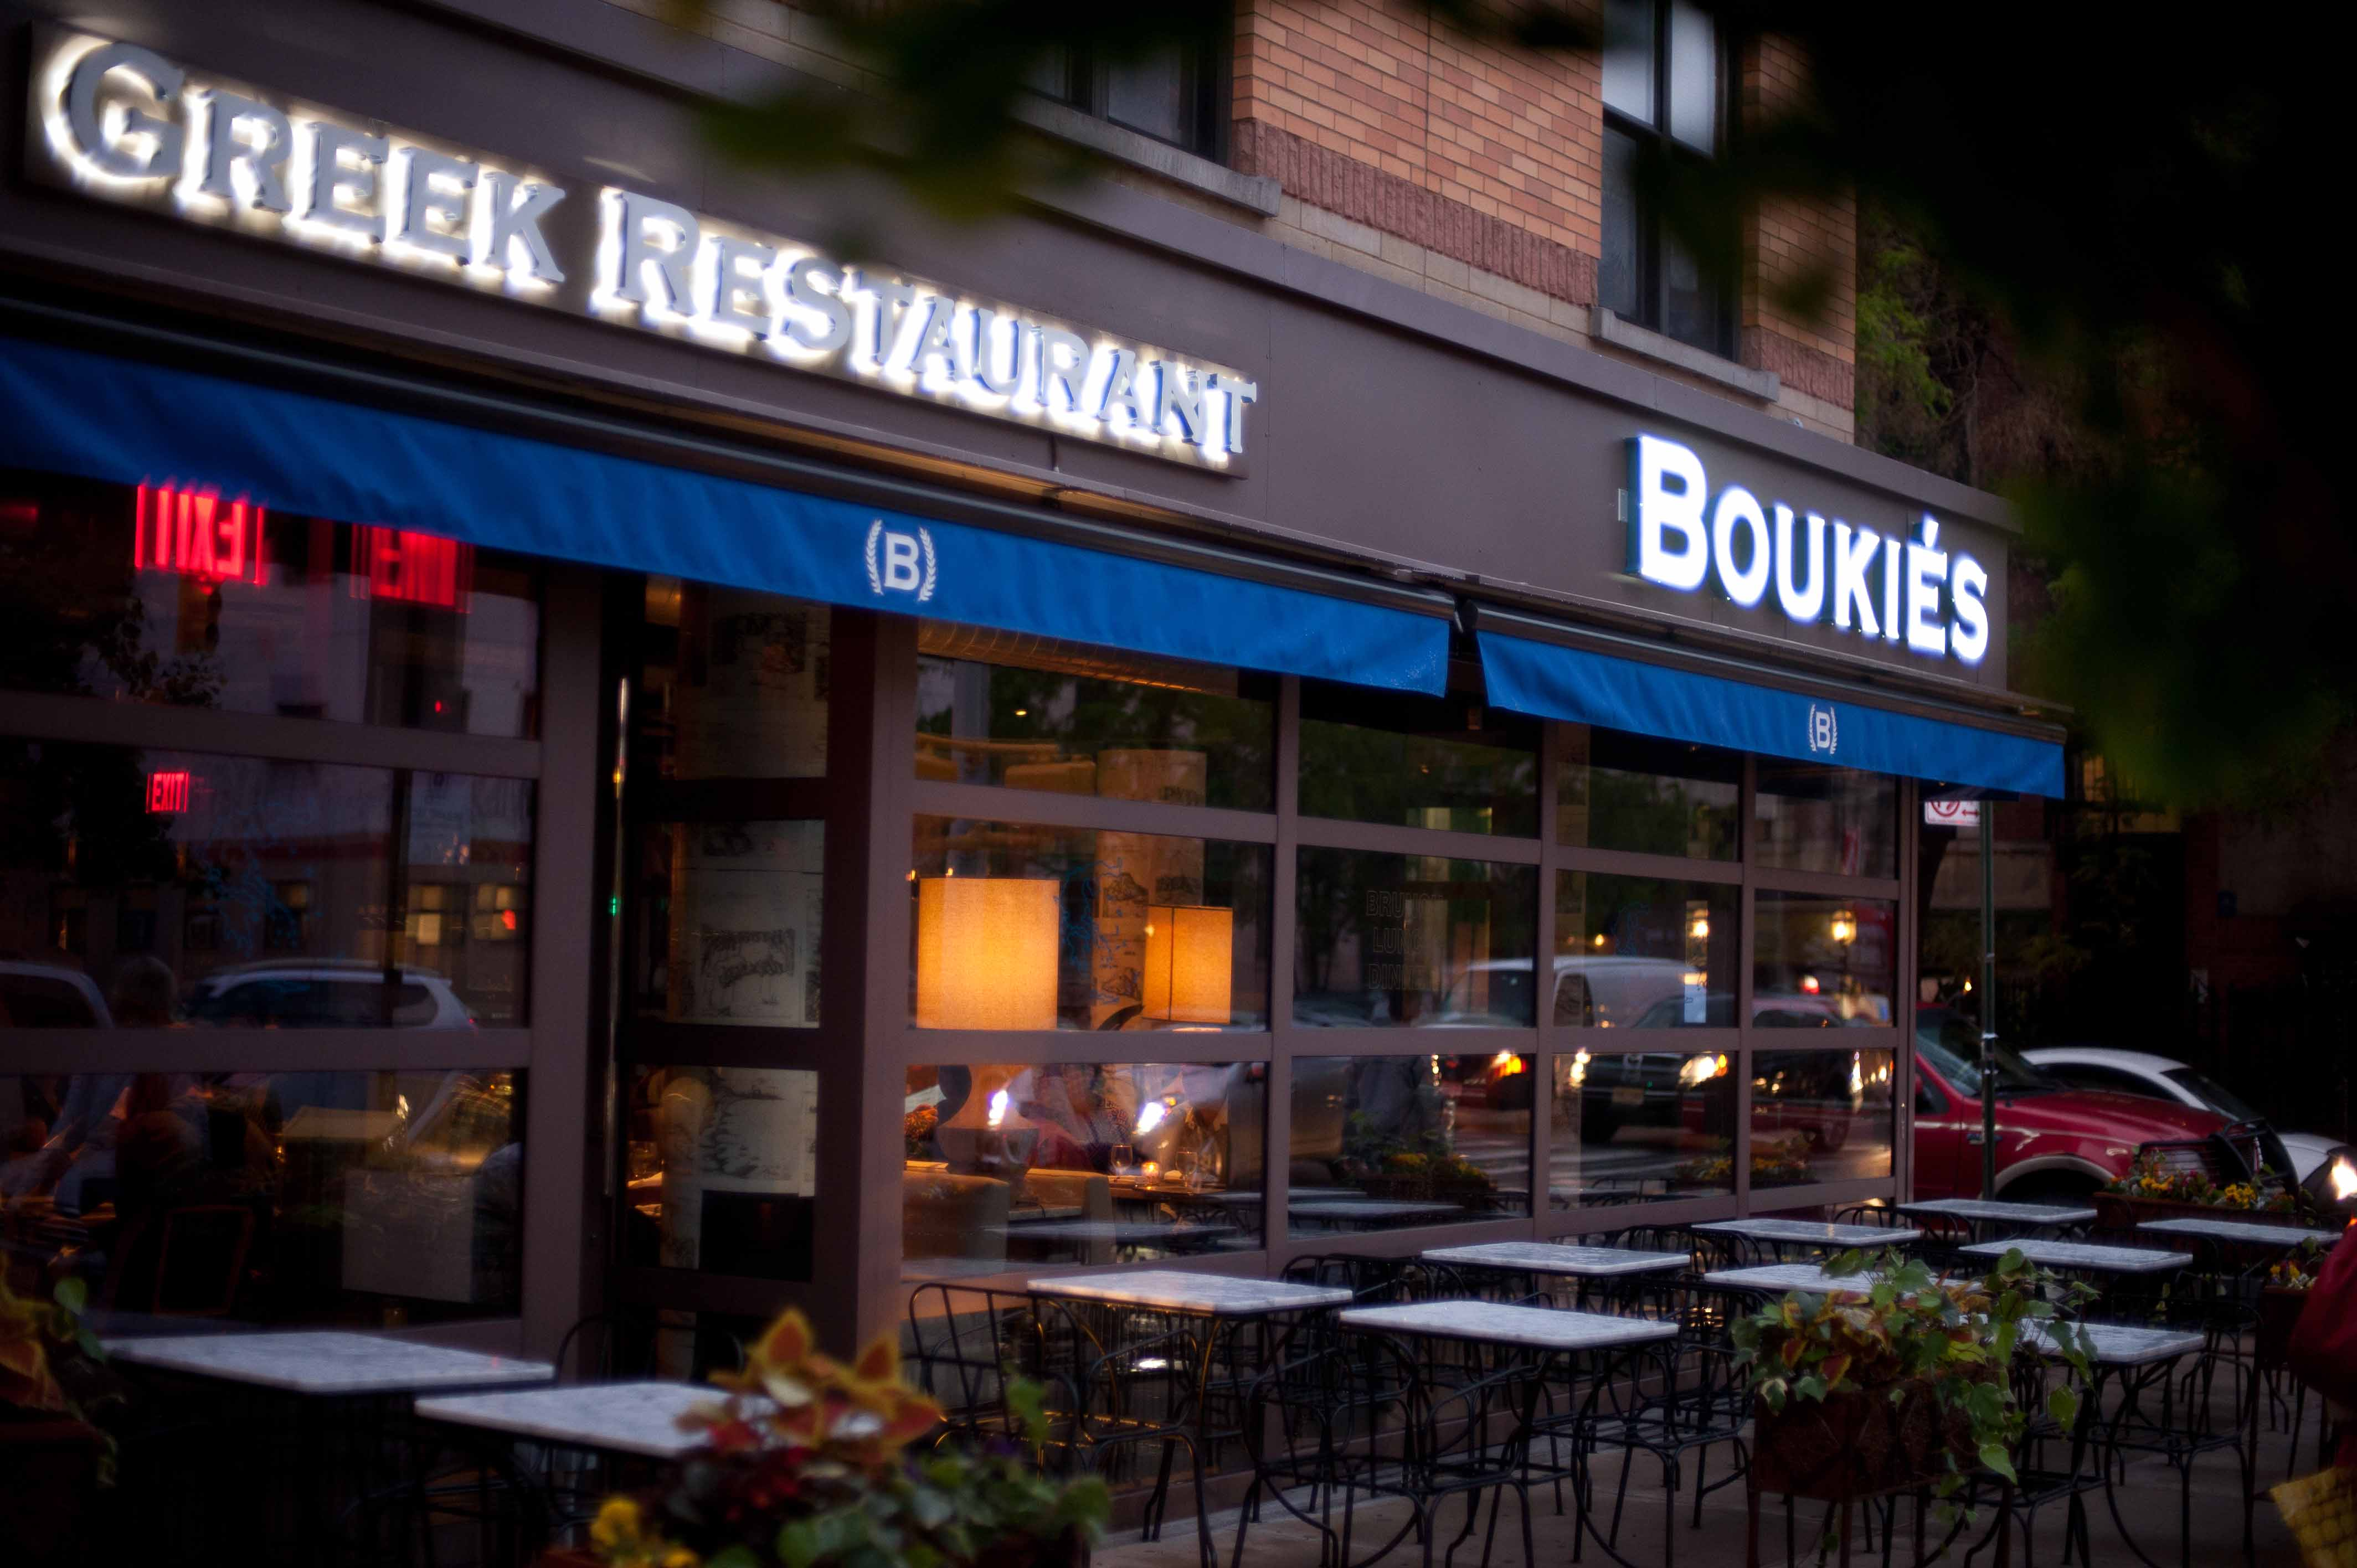 A Greek Dinner at Boukiés, New York outdoor